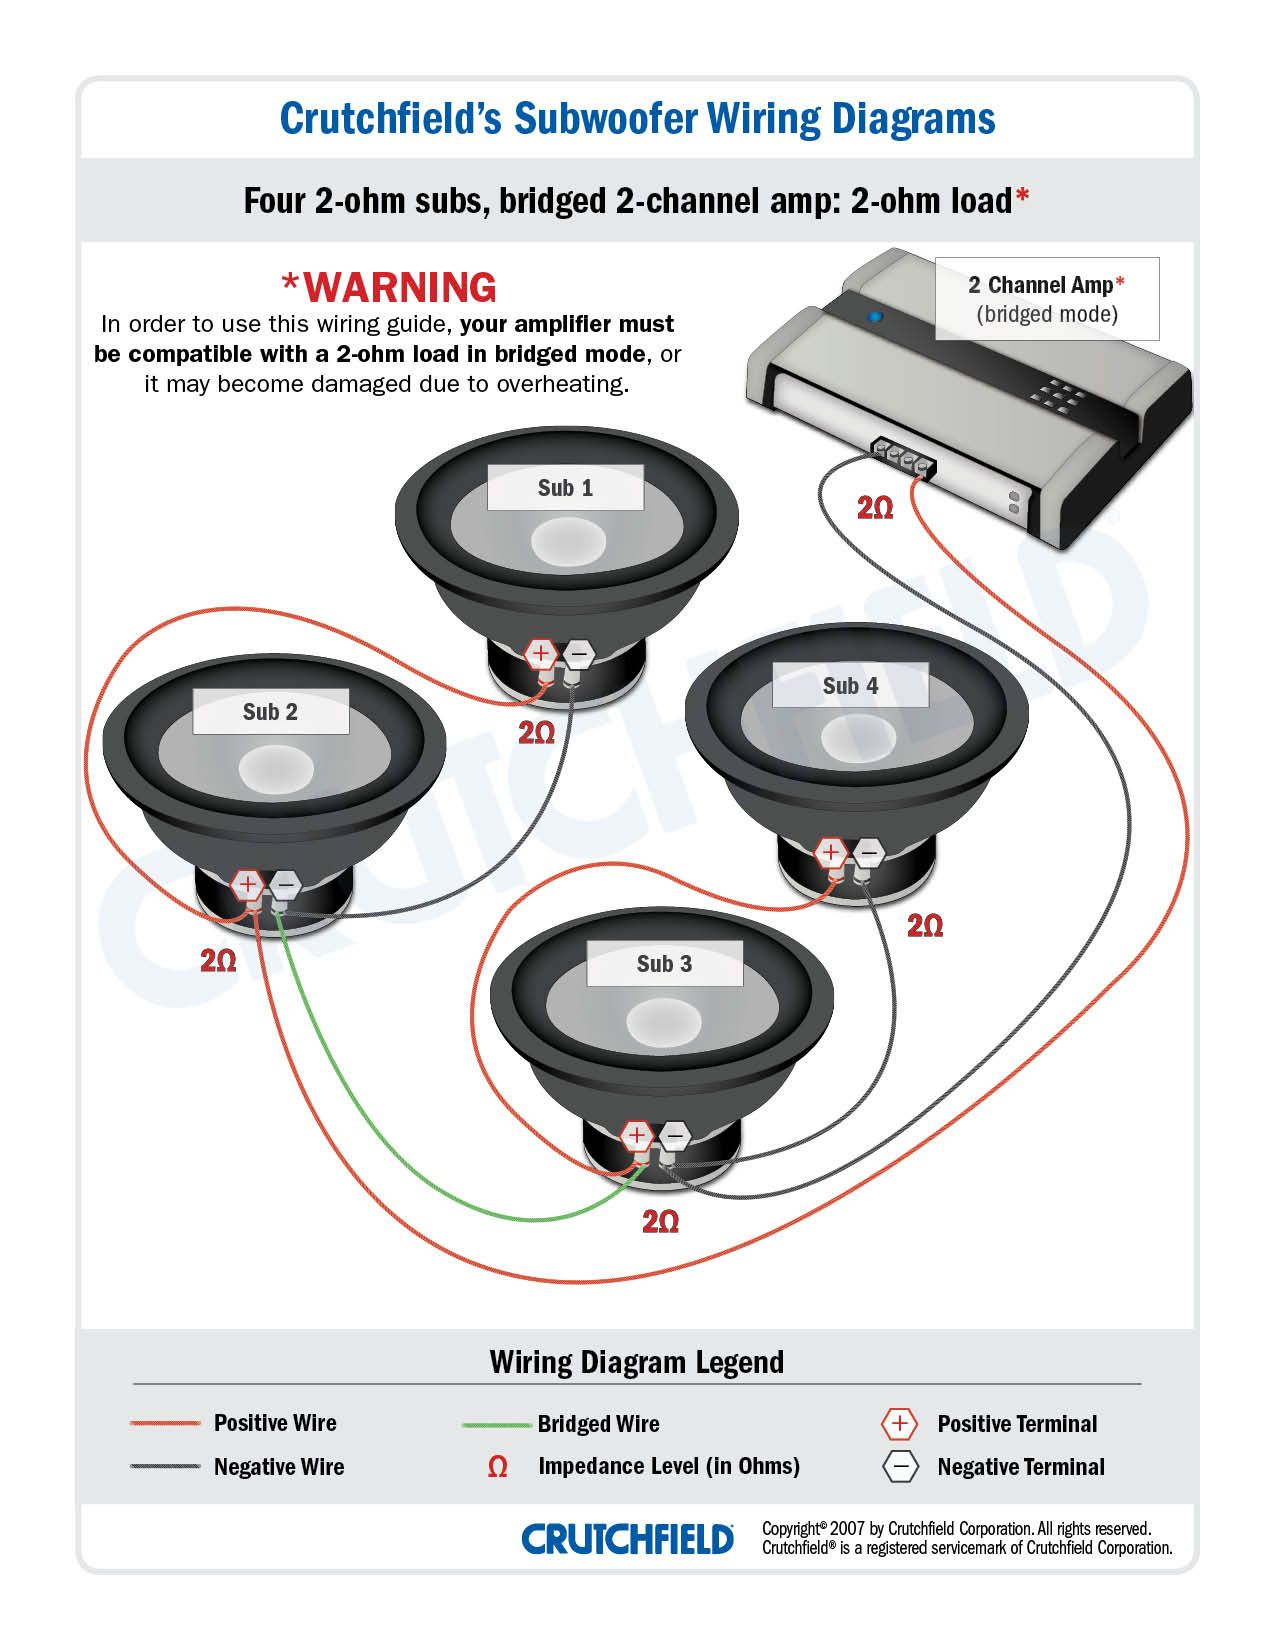 small resolution of top 10 subwoofer wiring diagram free download 4 svc 2 ohm 2 ch low rh pinterest com 4 ohm subwoofer wiring diagram home subwoofer wiring diagrams